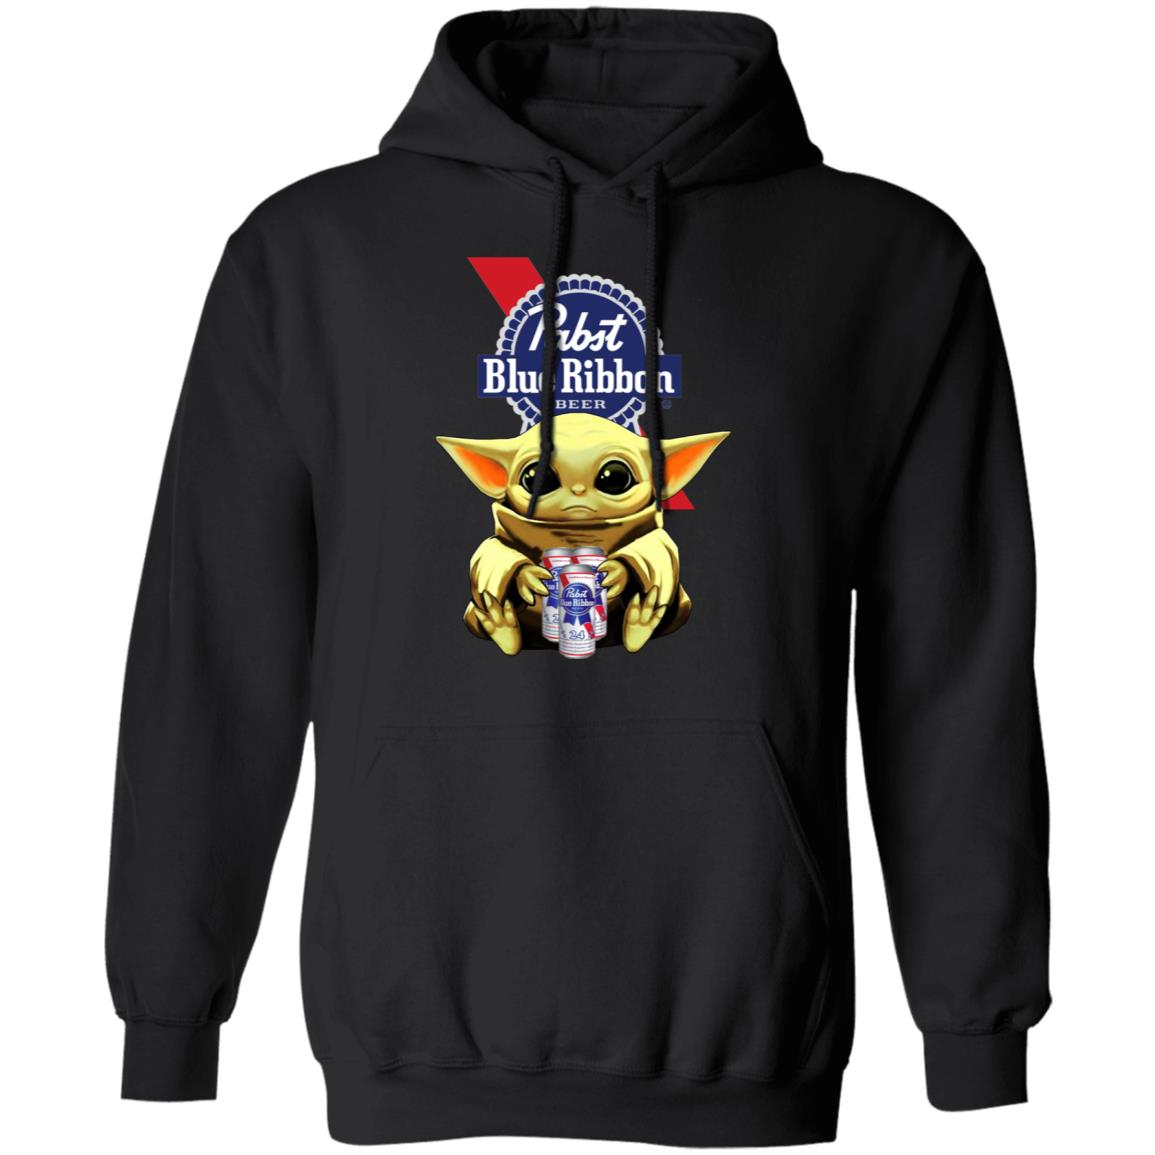 Baby Yoda Hug Pabst Blue Ribbon Beer Shirt Long Sleeve Hoodie